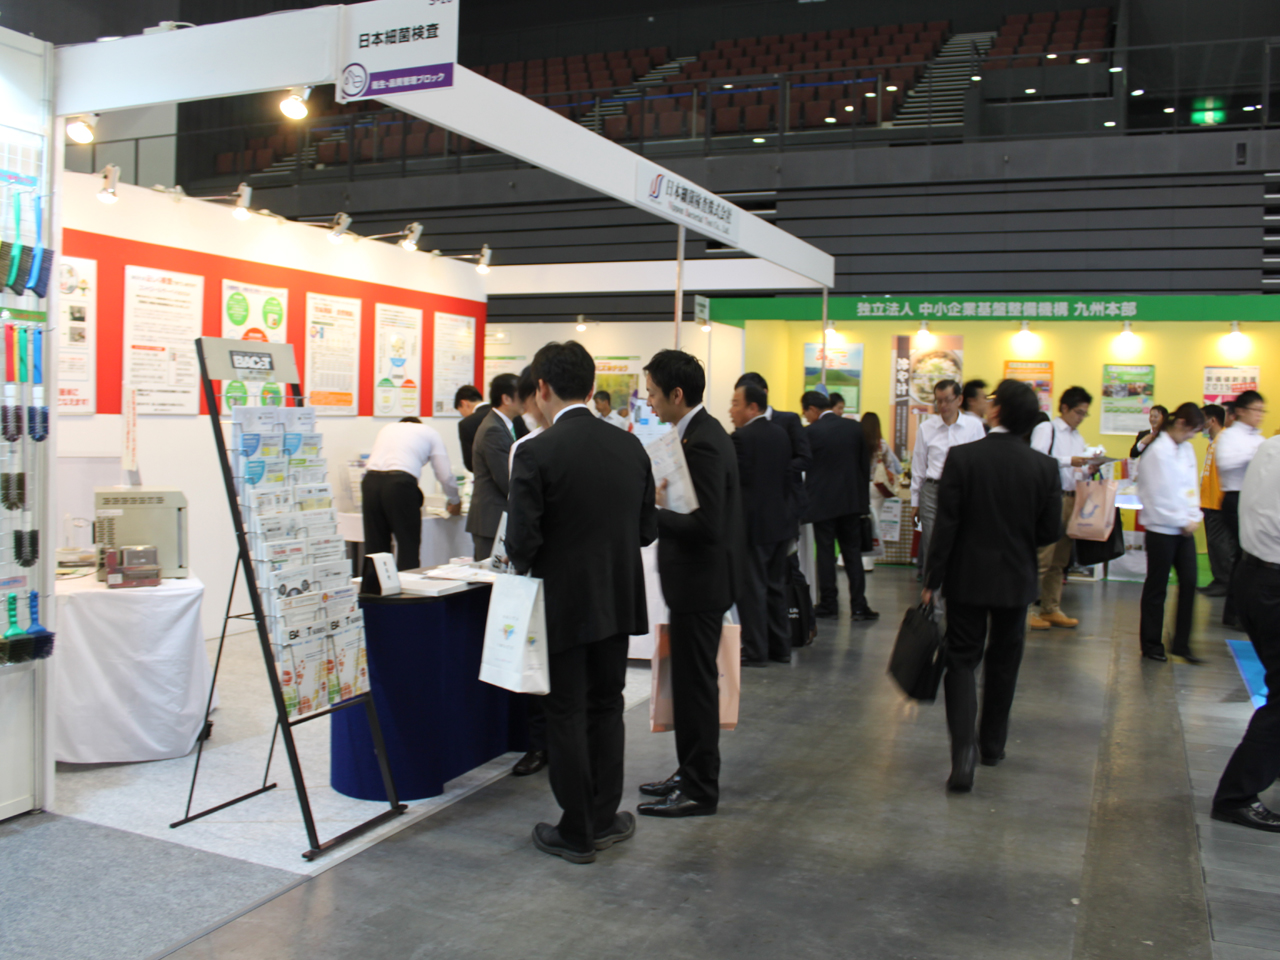 第25回西日本食品産業創造展'15 (PROFESSIONAL FOODSERVICE, INDUSTRY & CREATION